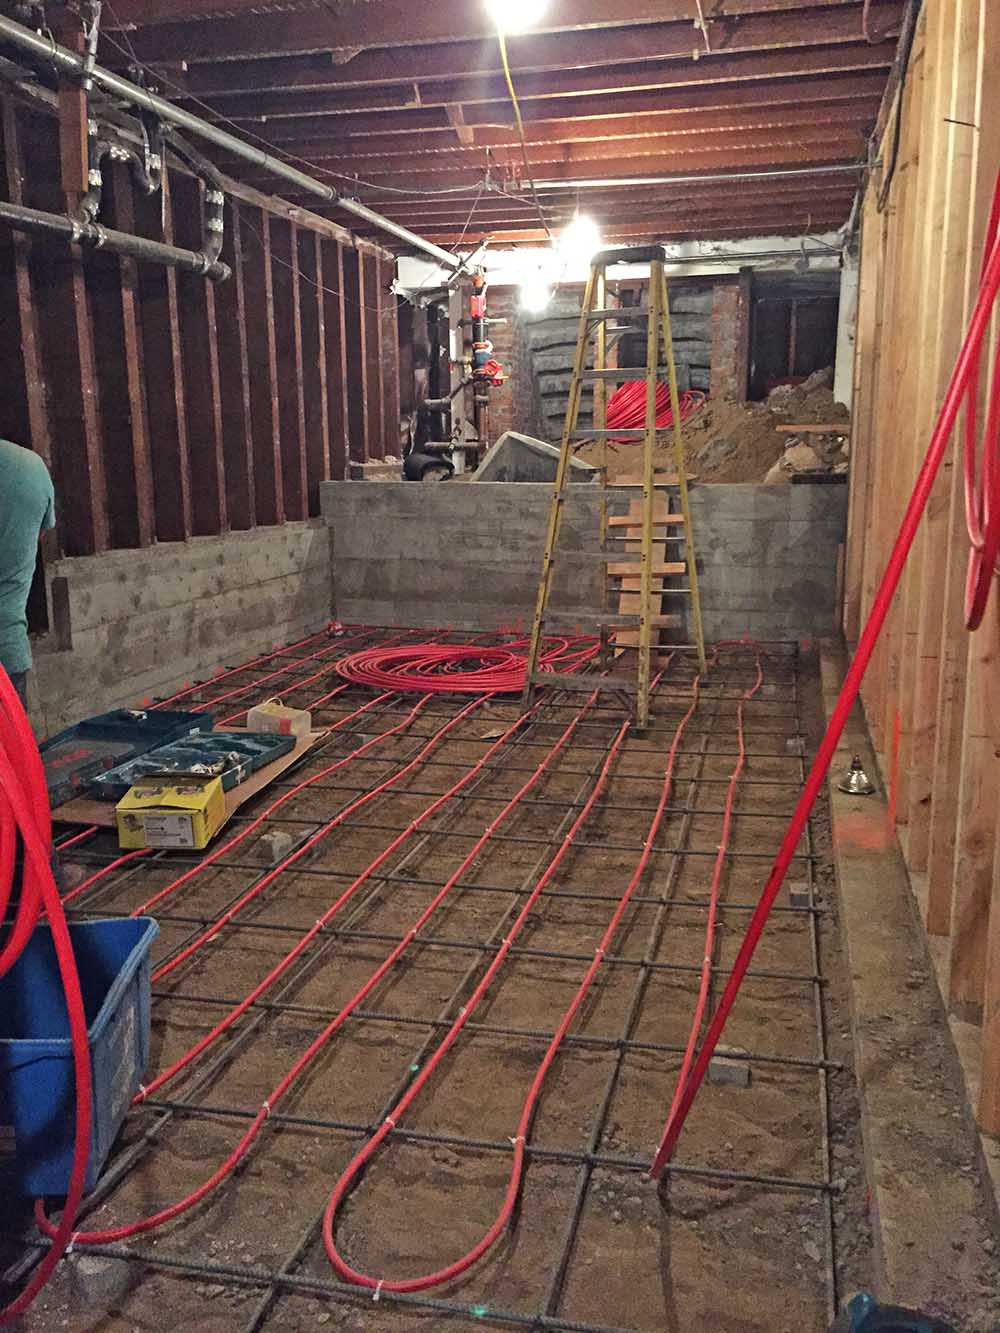 The underfloor heating is being installed, but there's not much natural light in here yet.